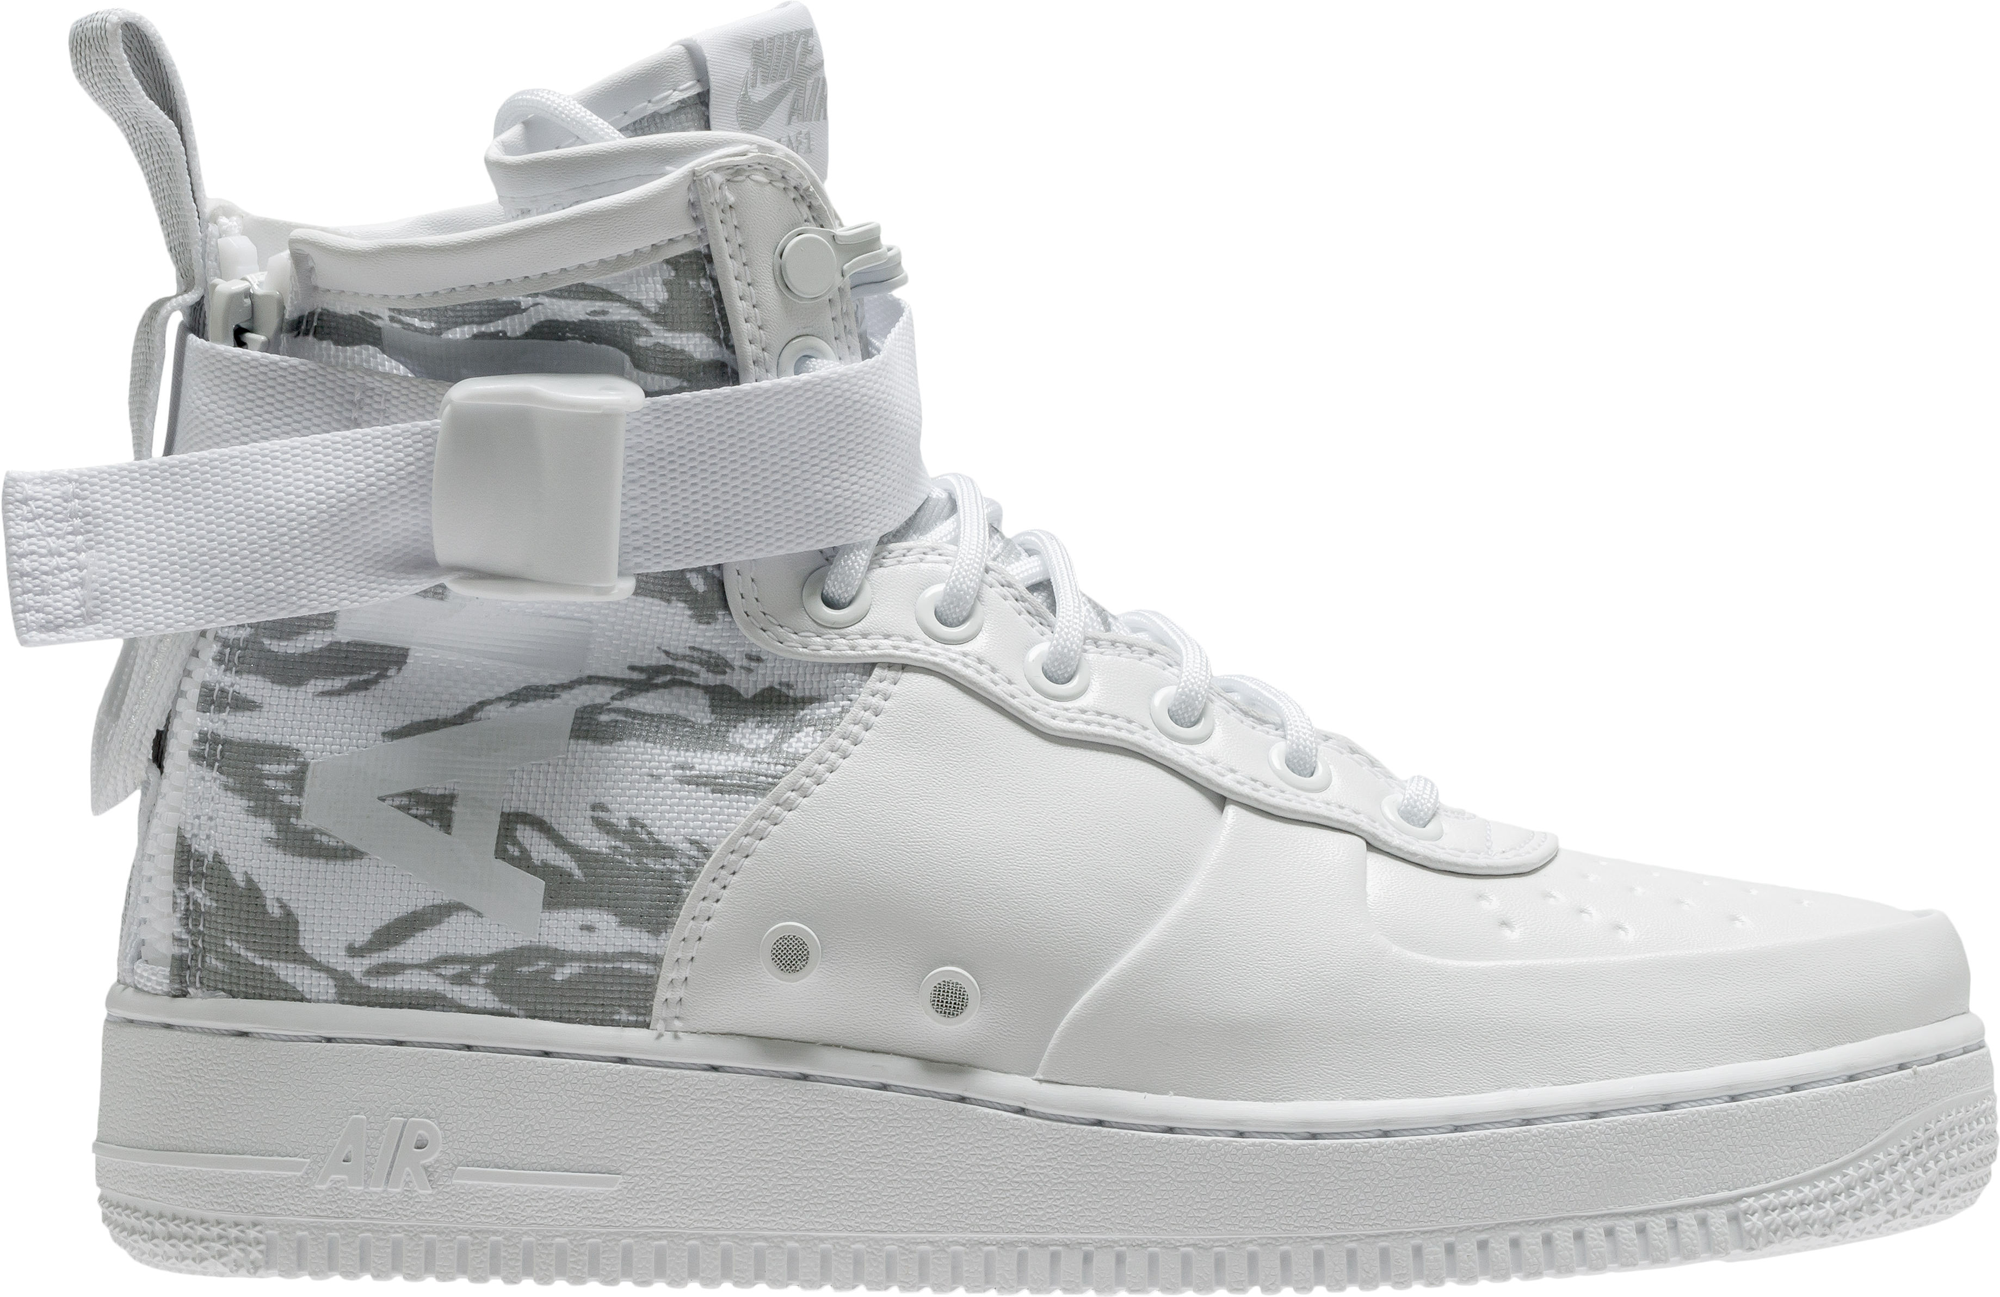 Nike Air Force 1 Camo Paypal - Musée des impressionnismes Giverny 2791fc03b8b0